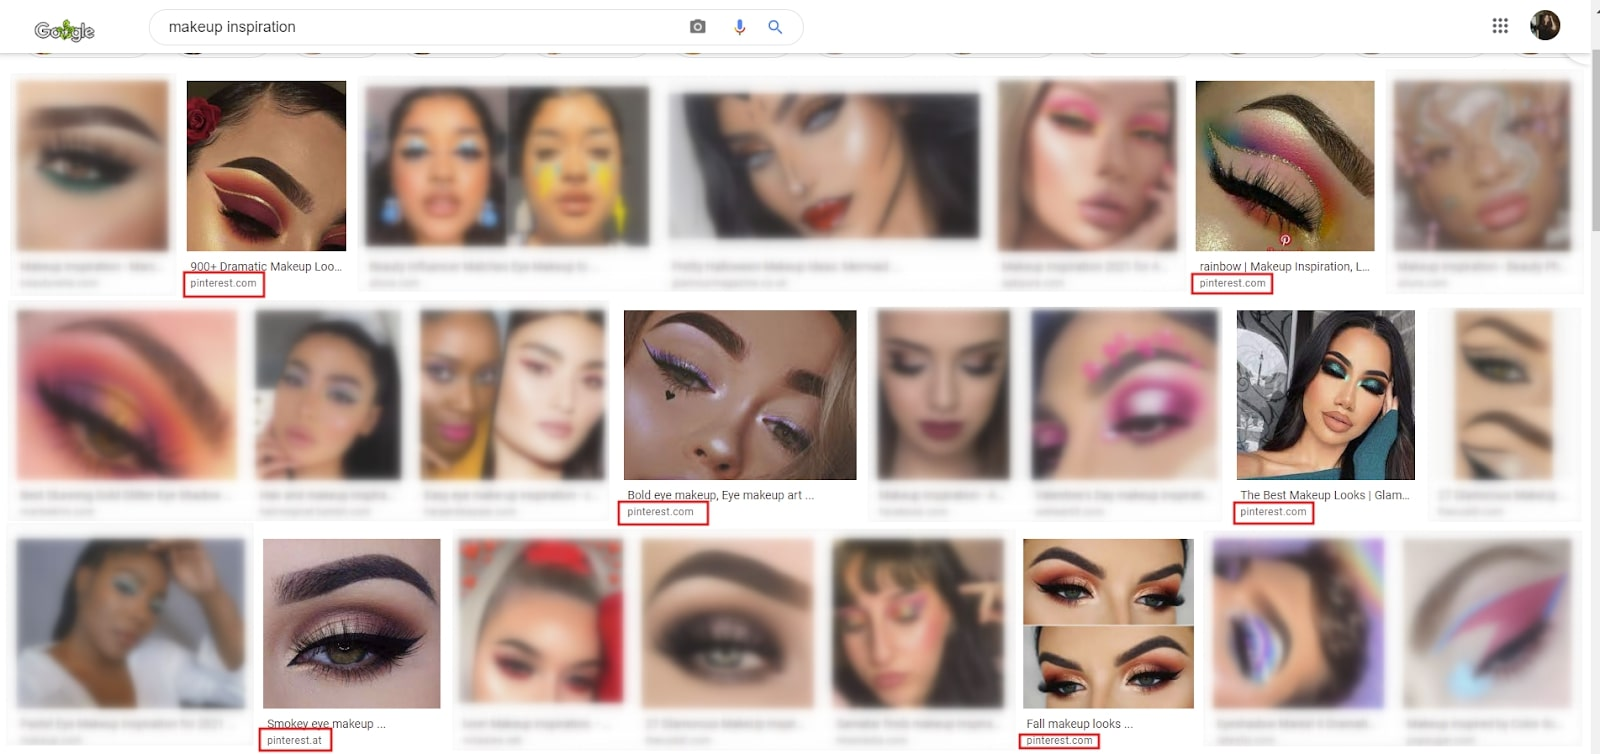 """Google Search Results for """"Makeup Inspiration"""""""